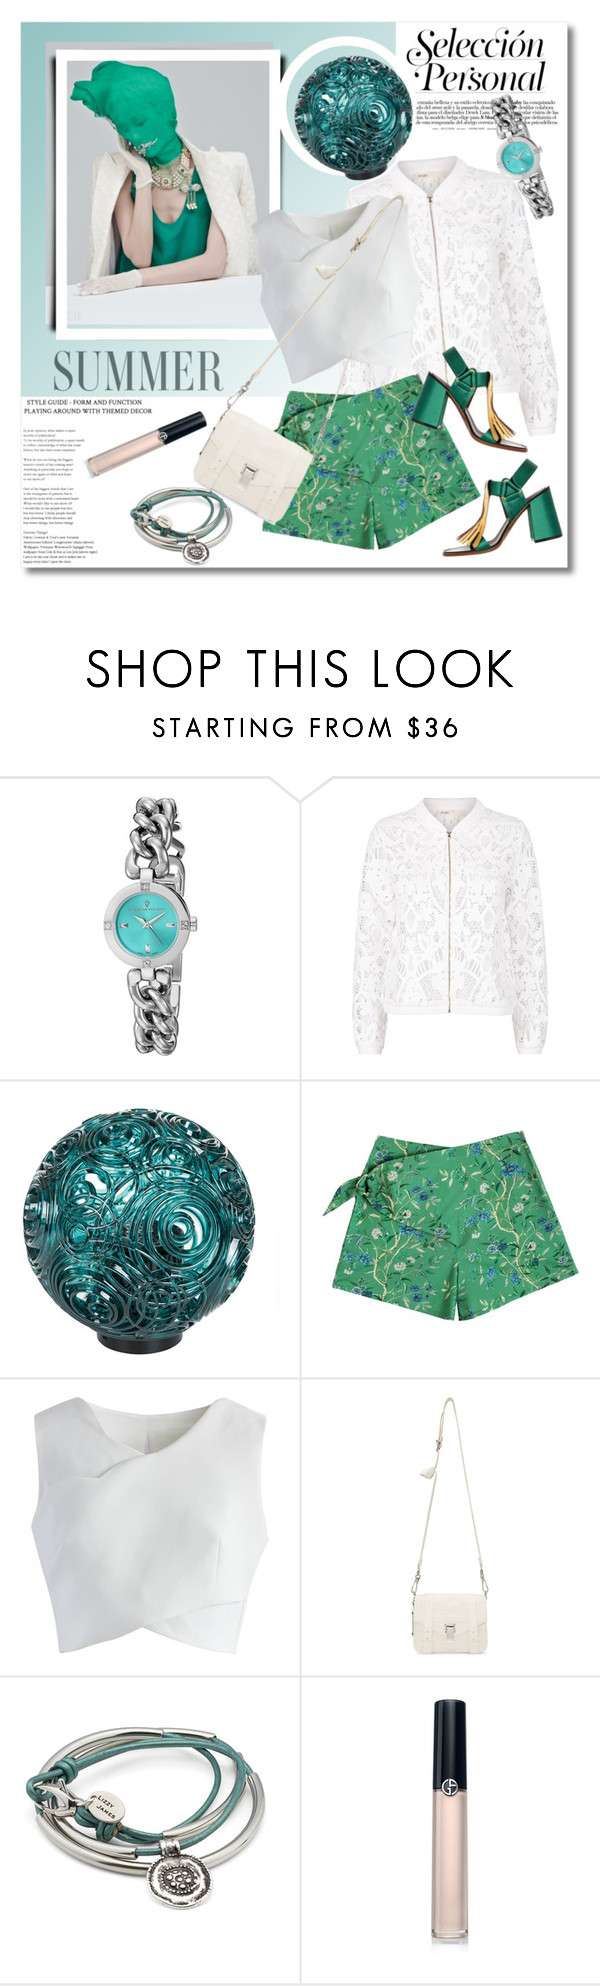 """Teal and white"" by vkmd ❤ liked on Polyvore featuring Christian Van Sant, Maje, Kartell, Samantha Pleet, Chicwish, Proenza Schouler, Lizzy James, Armani Beauty and GetTheLook"